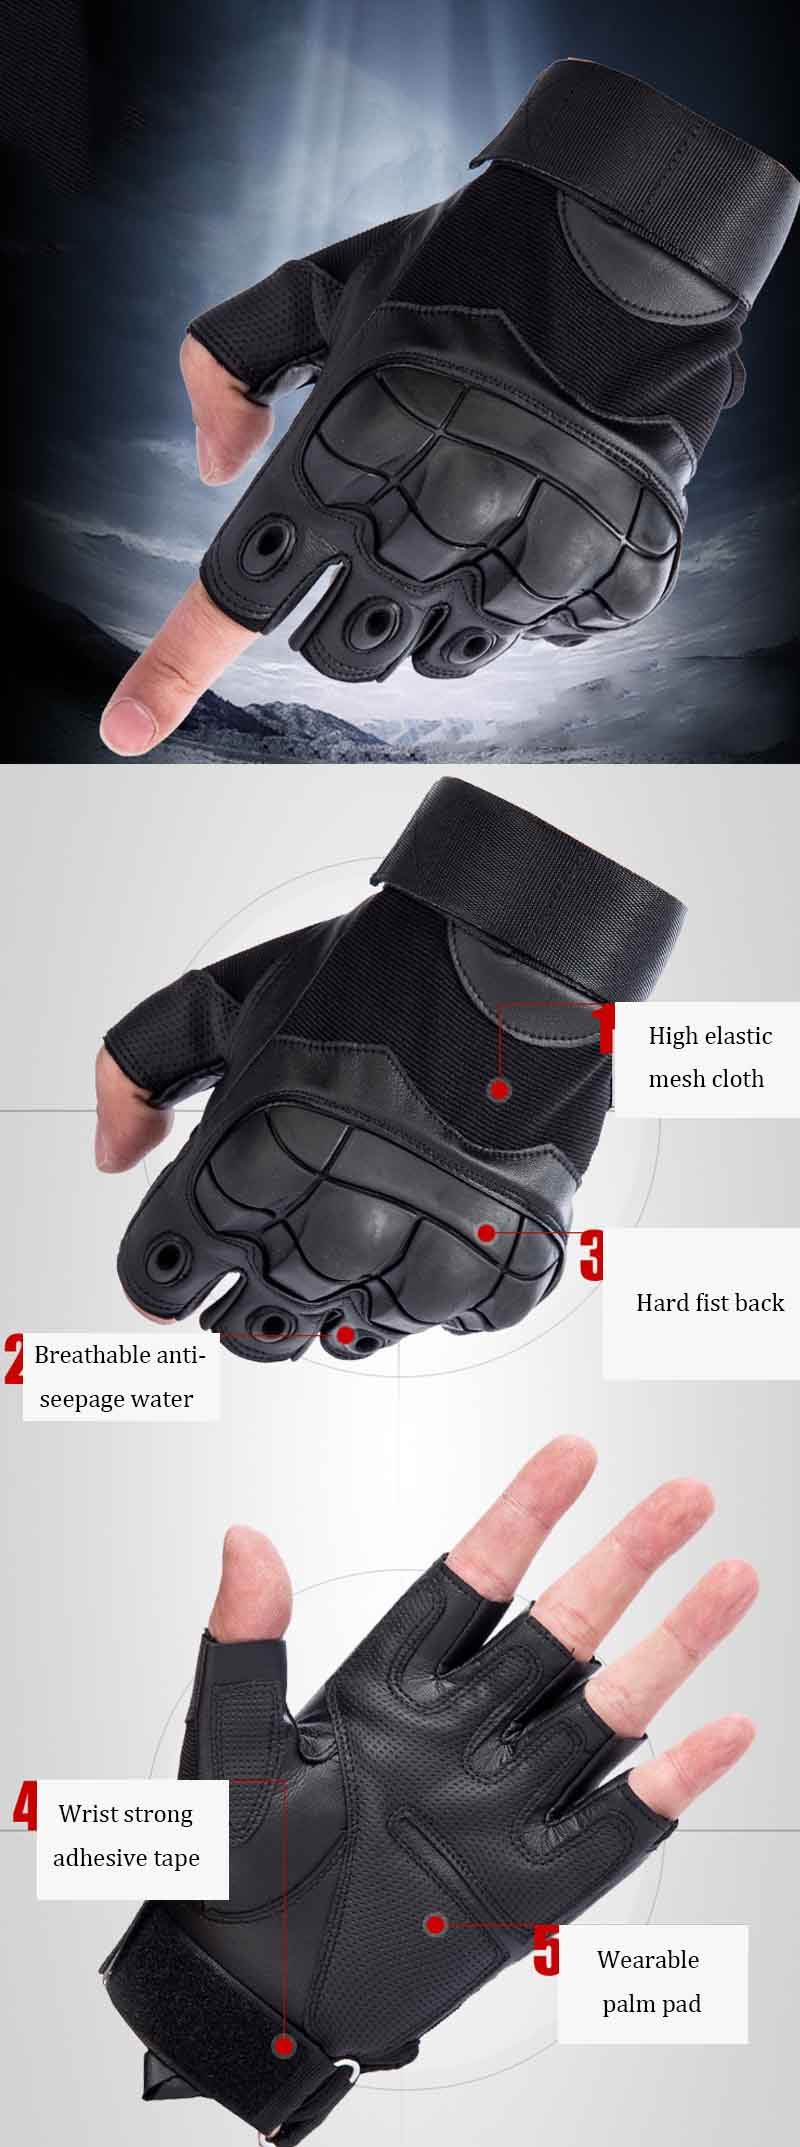 1Pair KALOAD Outdoor Tactical Glove Half Finger Gloves Sports Climbing Cycling Fitness Anti-skid Gloves